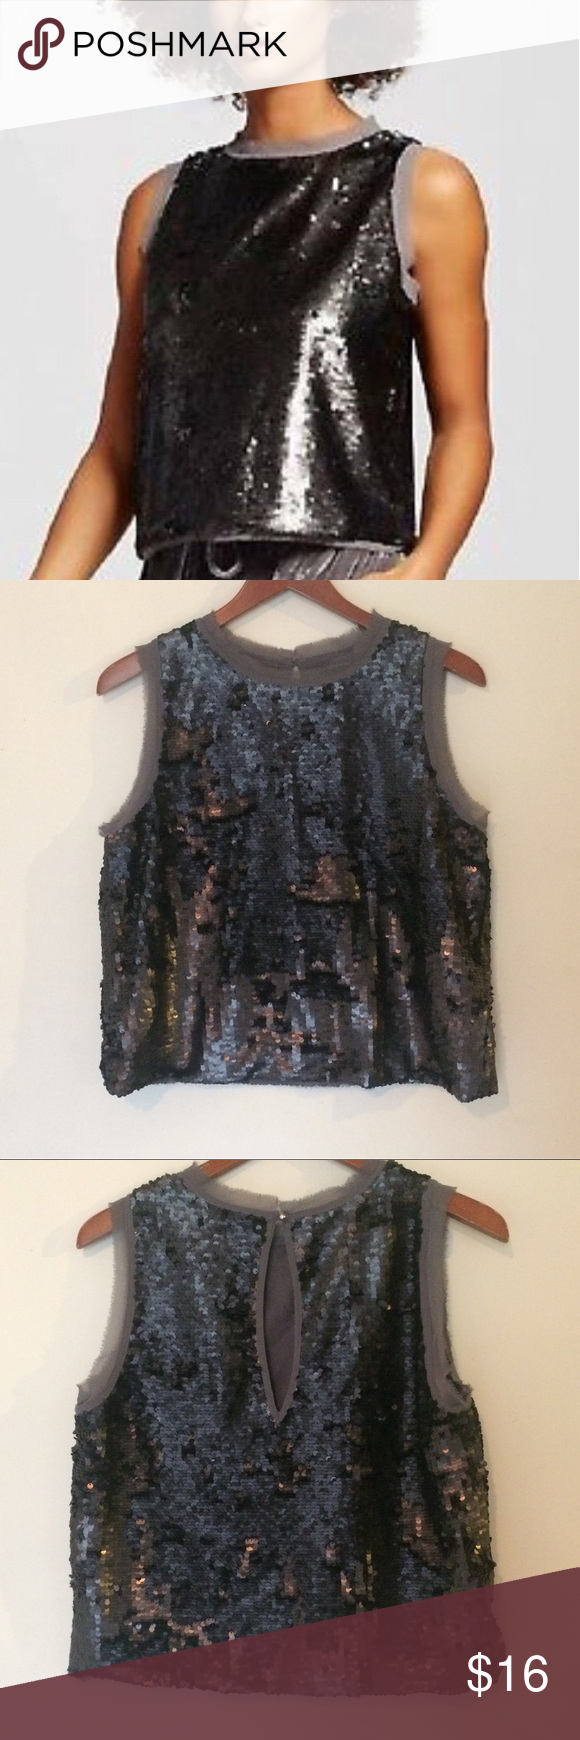 91898599ee76ec Who What Wear Sequin Top Size M Thunder gray sleeveless sequin top. Keyhole  back.